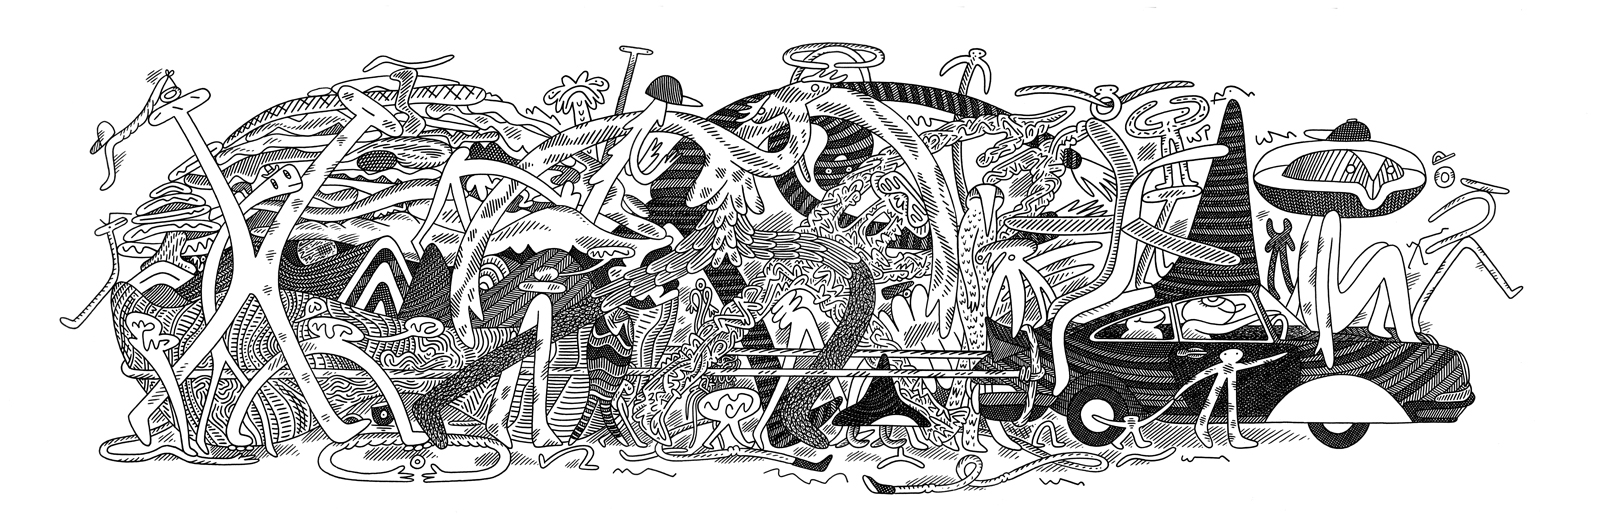 Pull<Br>11 x 35<Br>Ink on Paper<Br>$ 1250